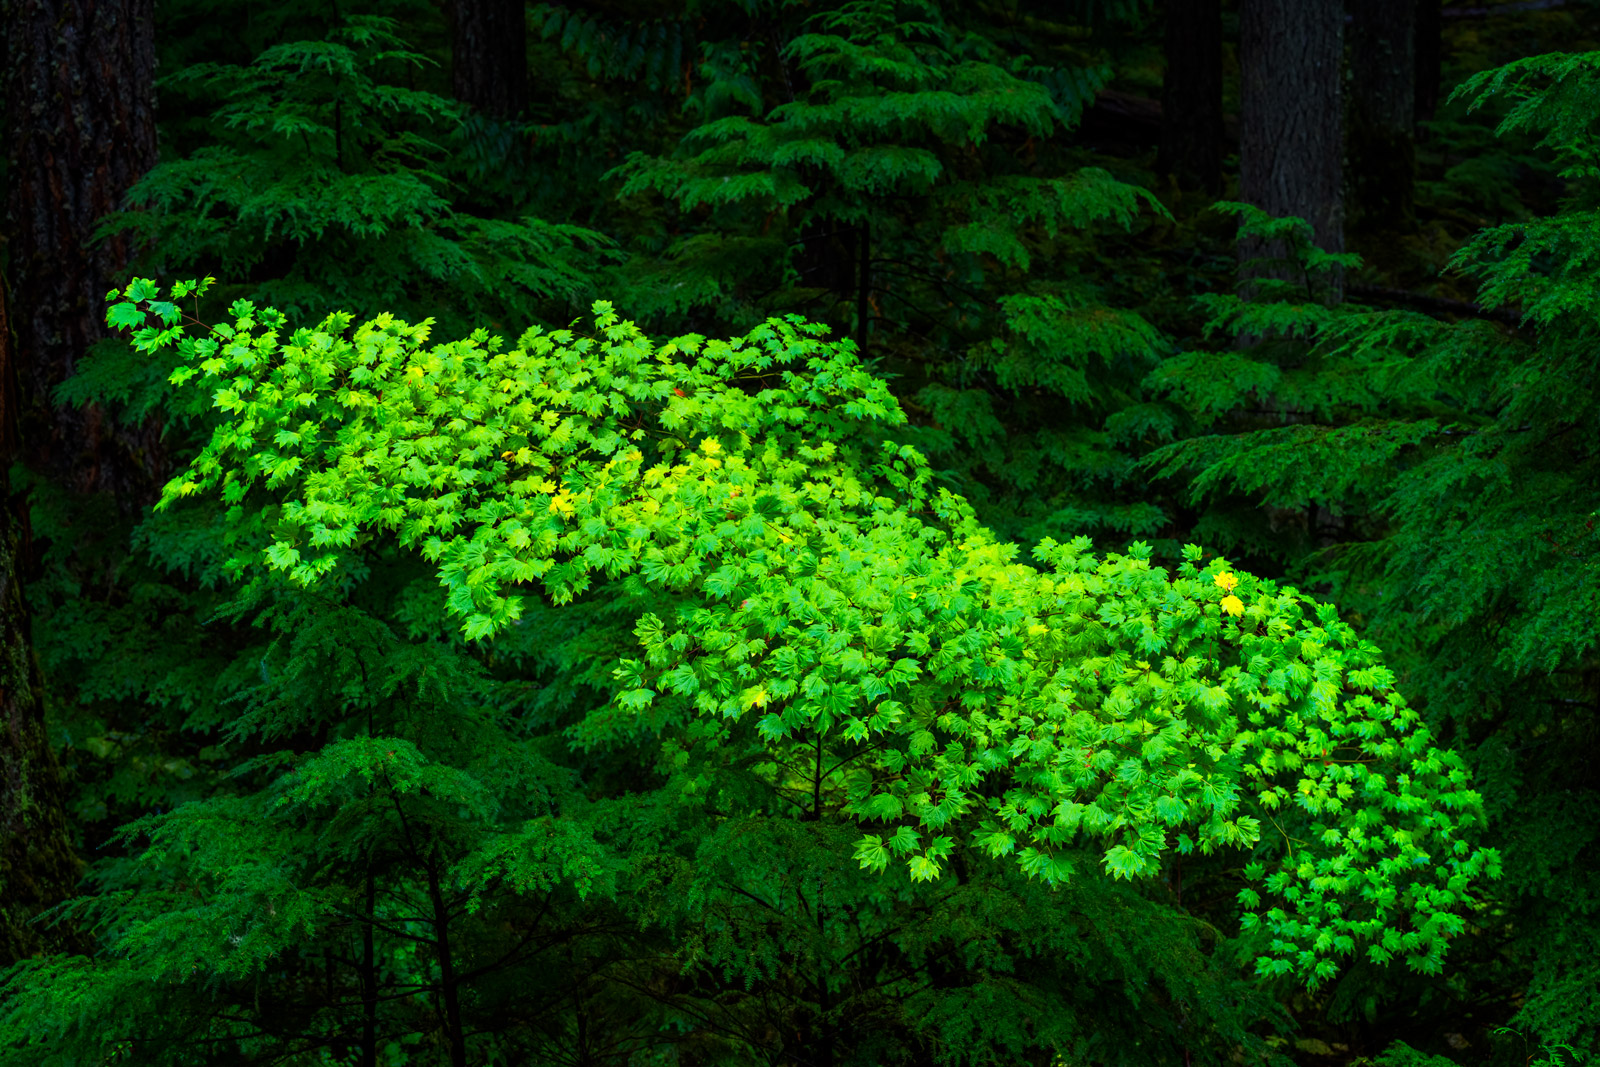 A Limited Edition, Fine Art photograph of a bright green tree in the dark forest in Washington. Available as a Fine Art print...